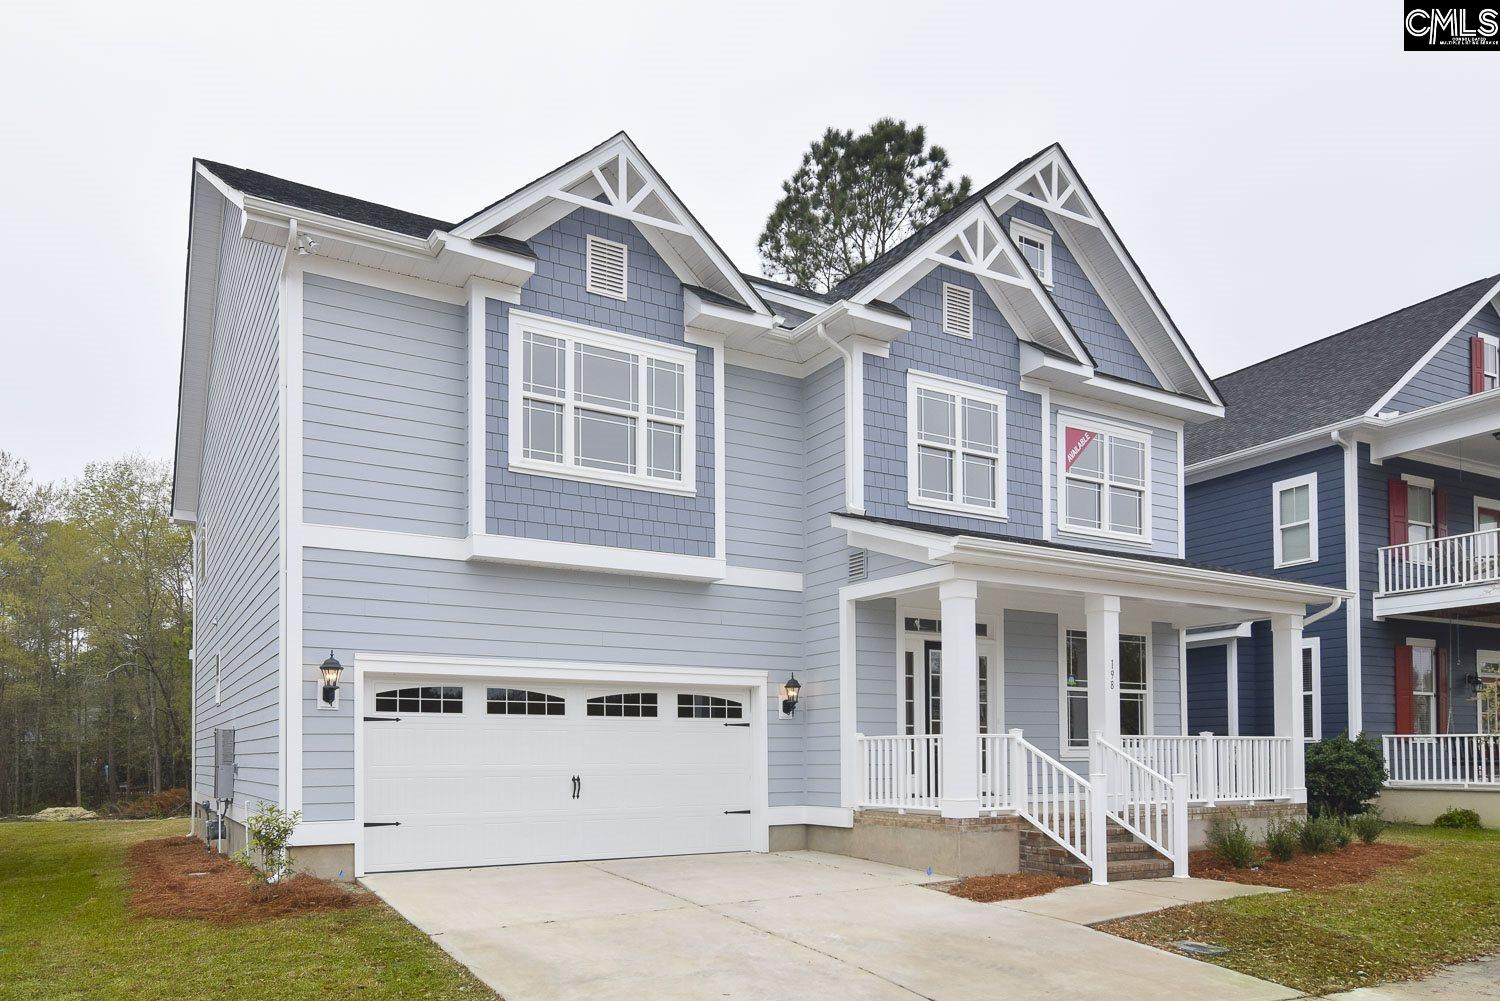 198 Baysdale Columbia, SC 29229